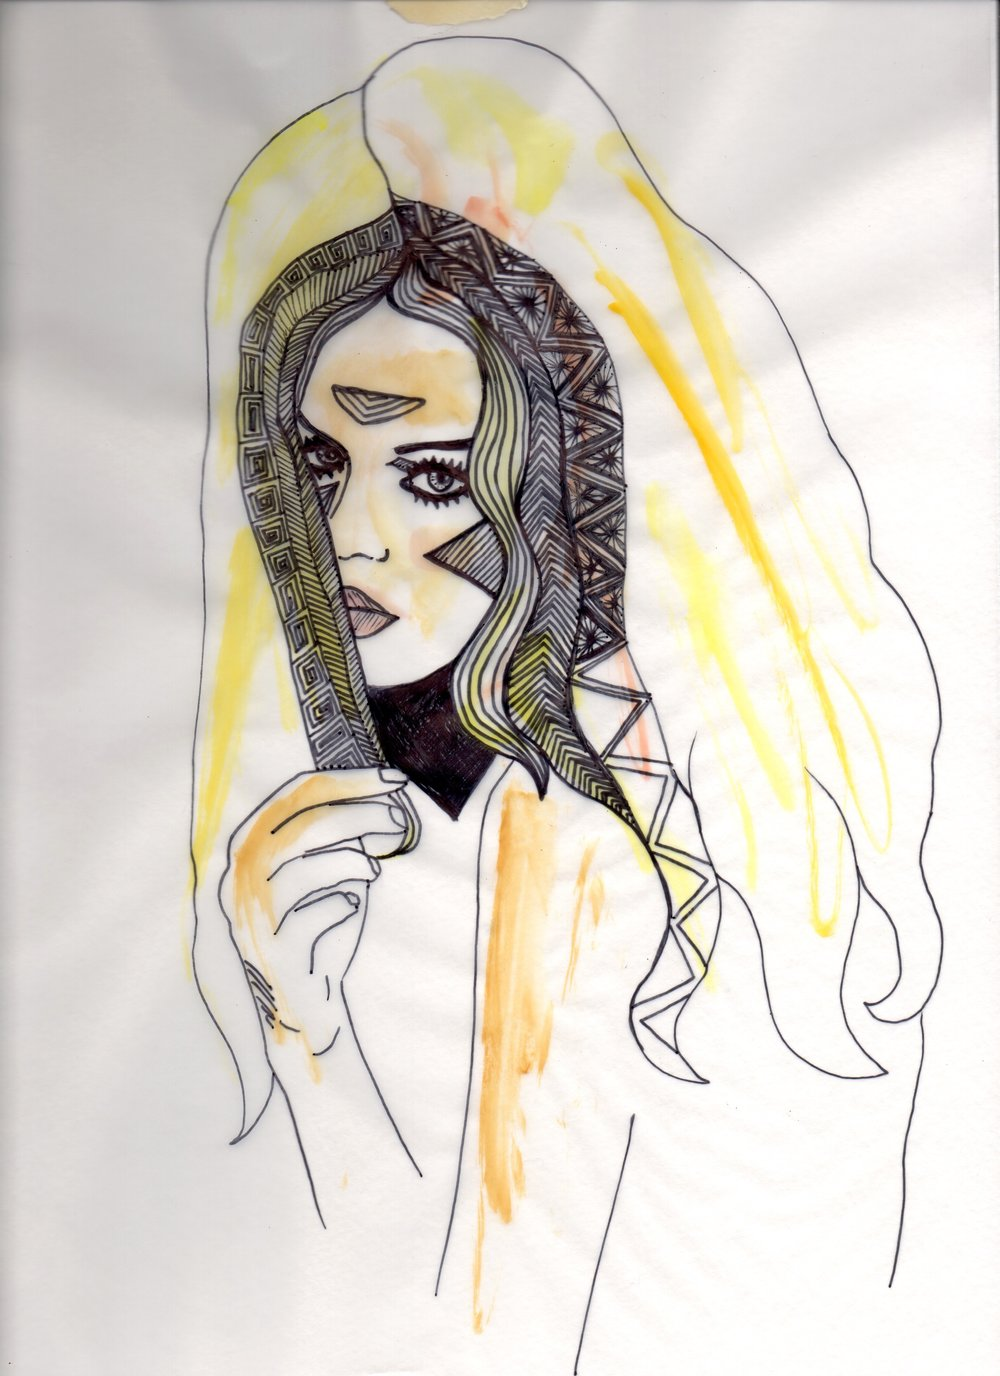 Vogue Pen Sharpie Drawing, Pen and Sharpie on Tracing Paper